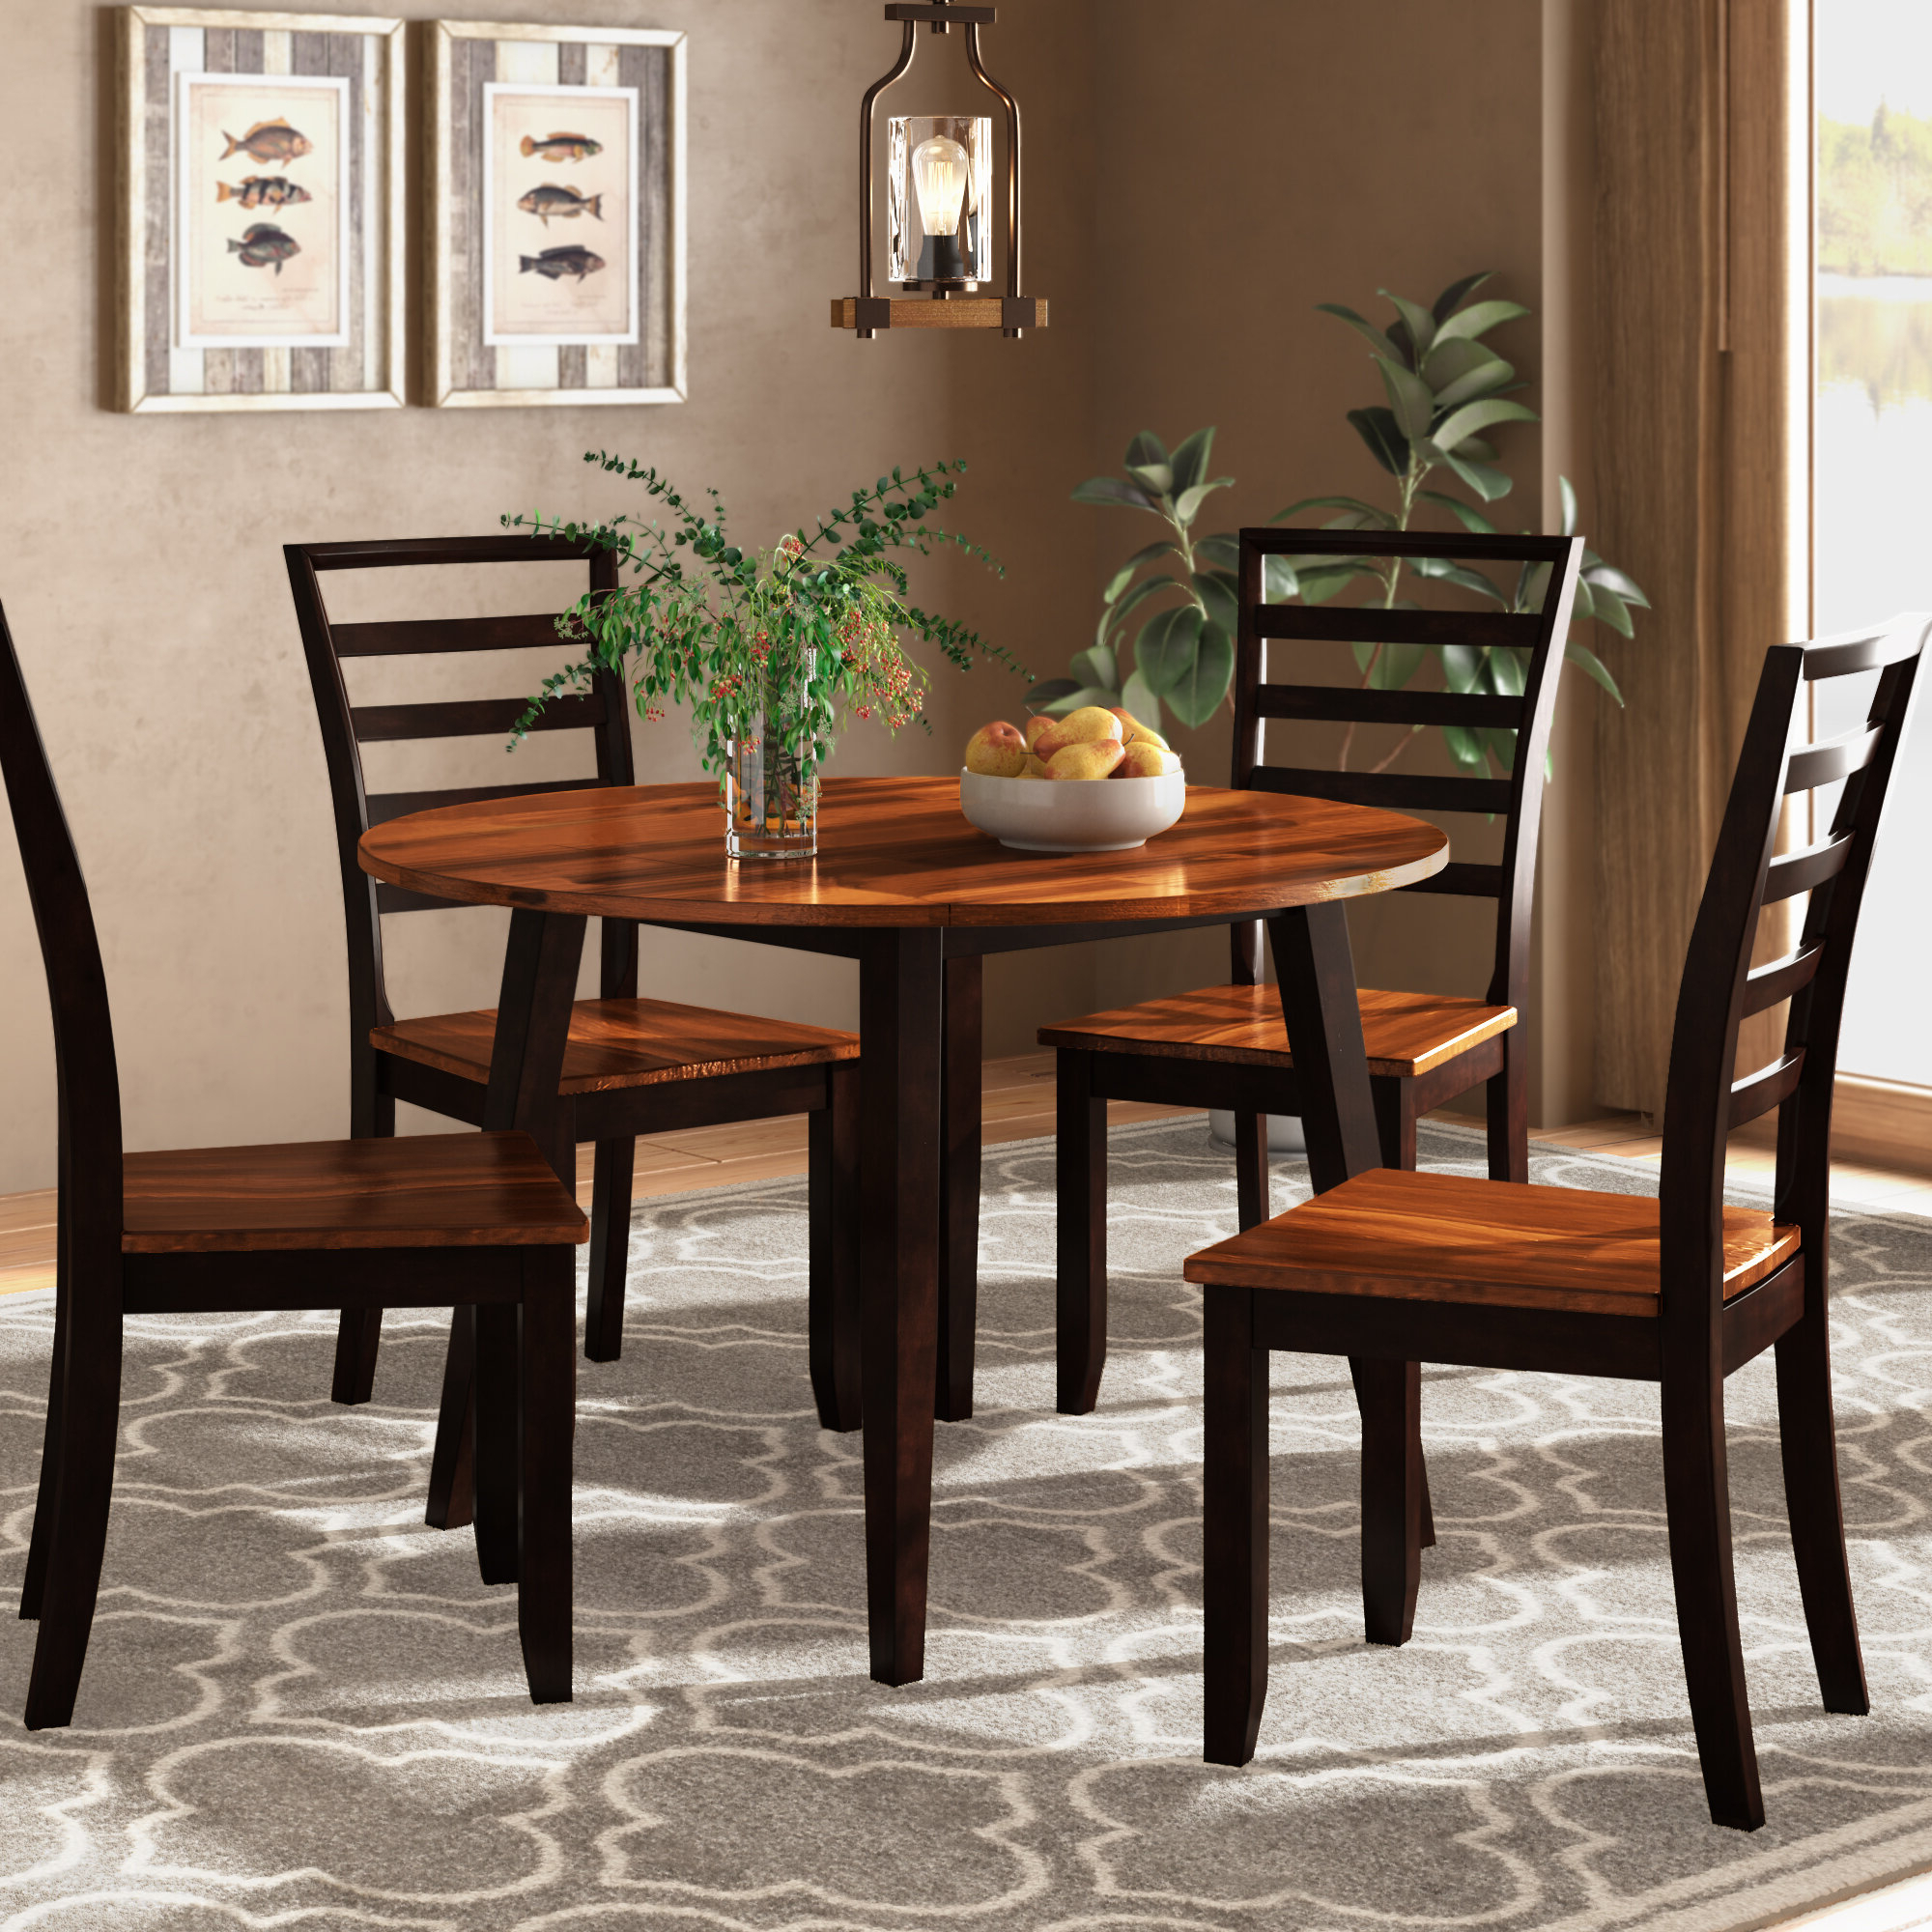 Well Known 5 Piece Breakfast Nook Dining Sets Within Millwood Pines Hidalgo 5 Piece Drop Leaf Solid Wood Breakfast Nook (View 20 of 25)